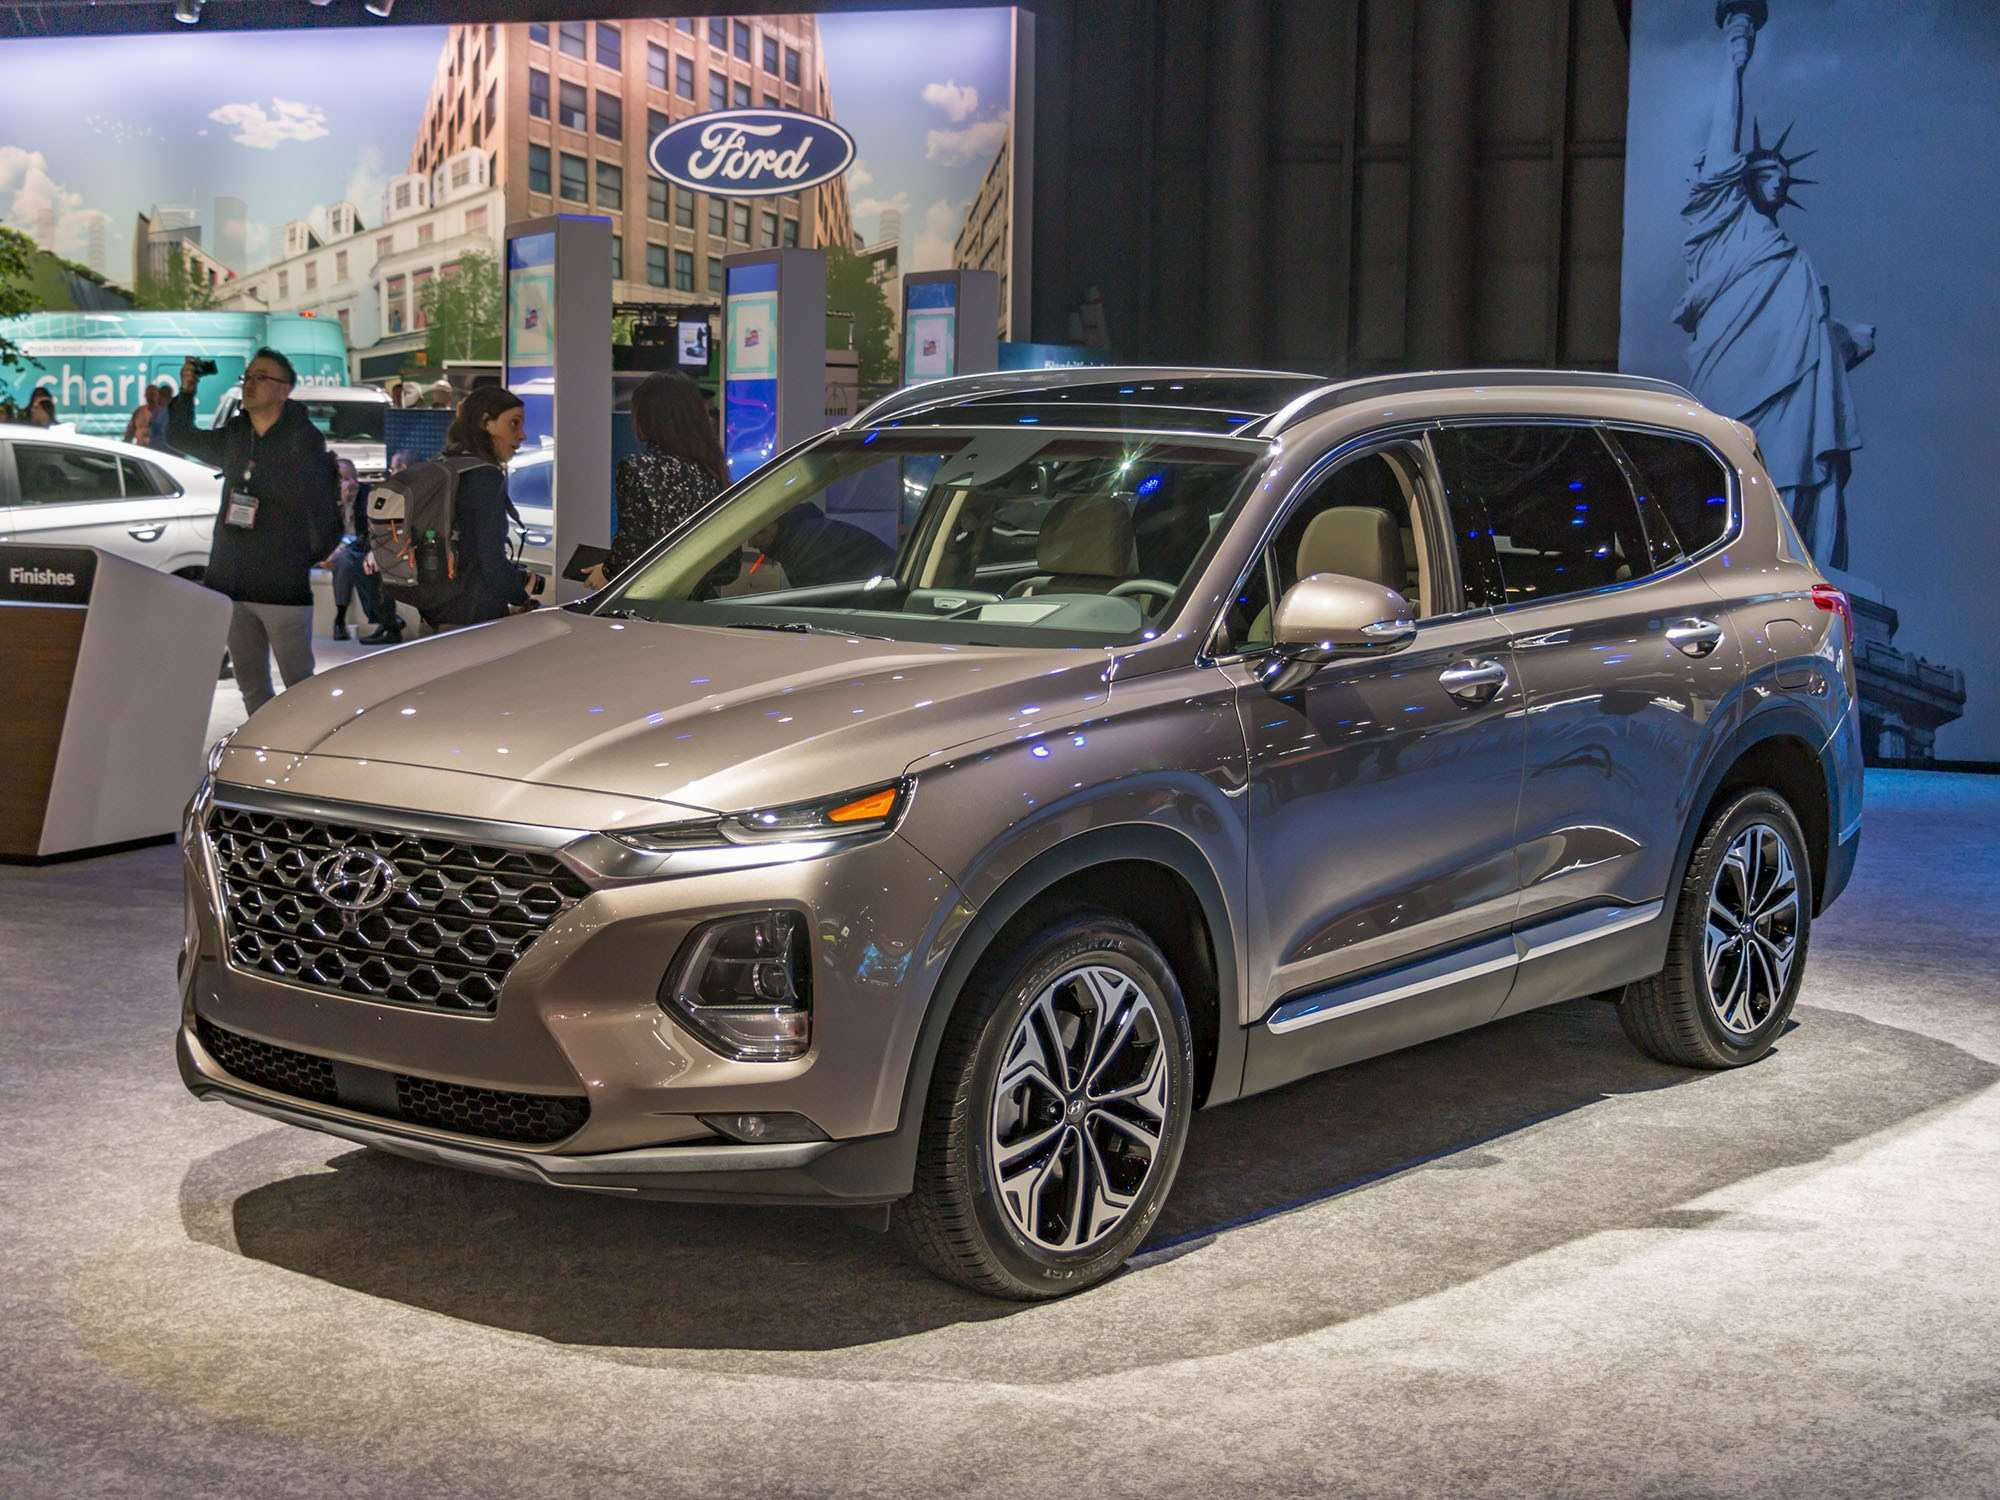 95 Gallery of 2019 Hyundai Usa Photos for 2019 Hyundai Usa